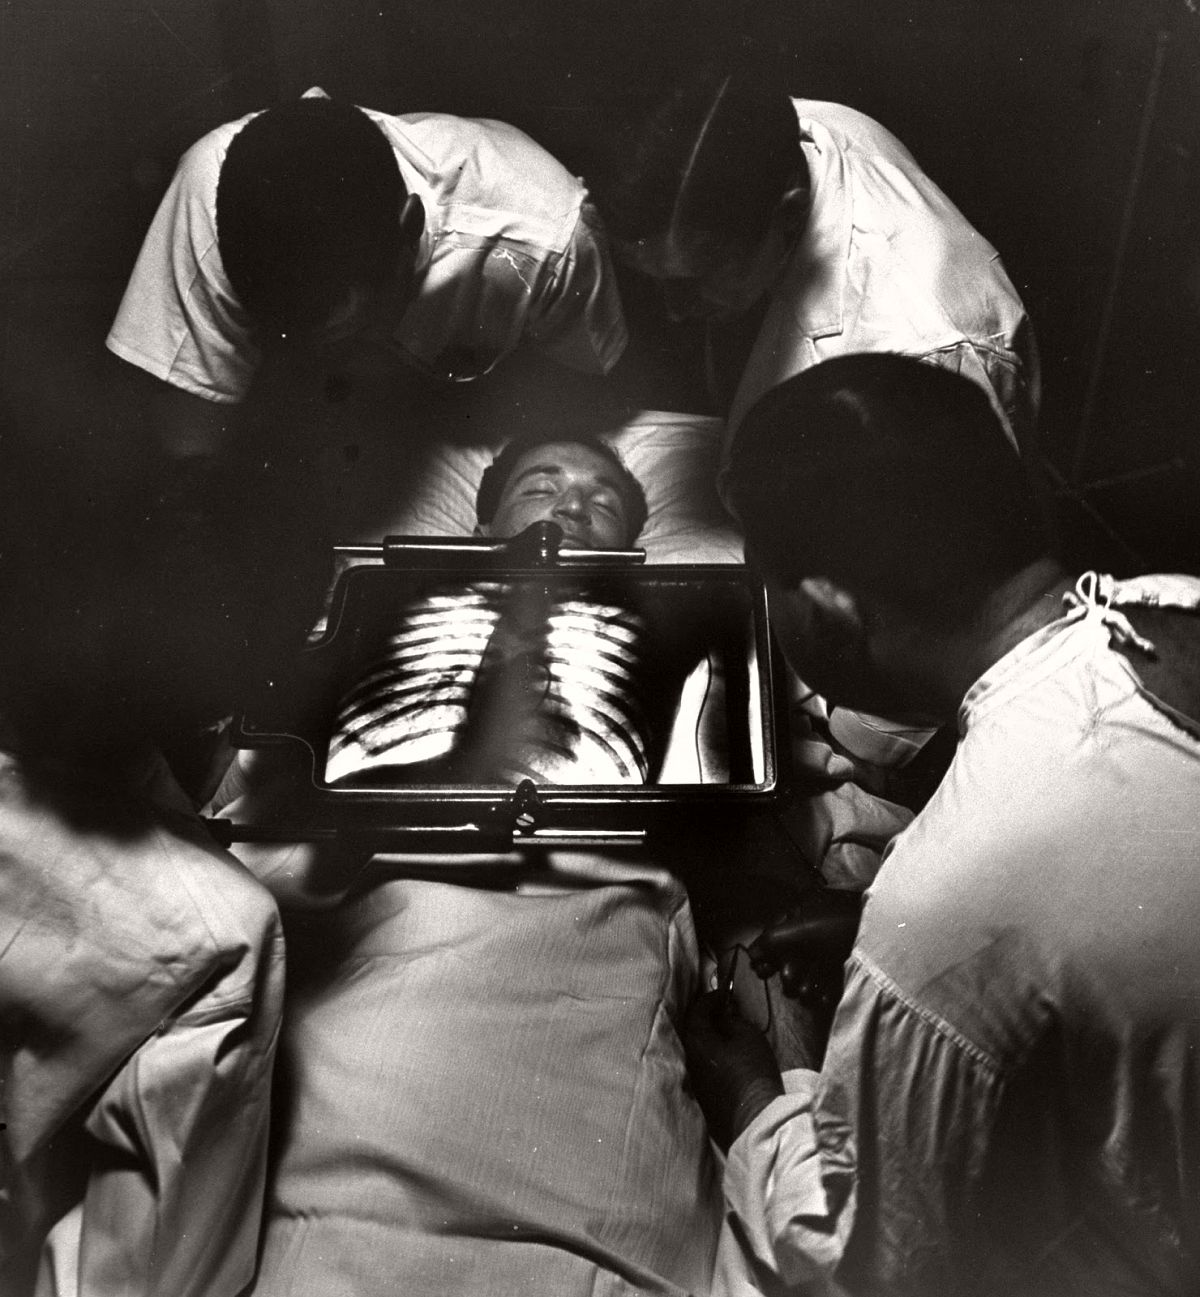 Doctors using x-ray machine to feed venous catherter into patient's heart, 1947. (Al Fenn—The LIFE Picture Collection/Getty Images)